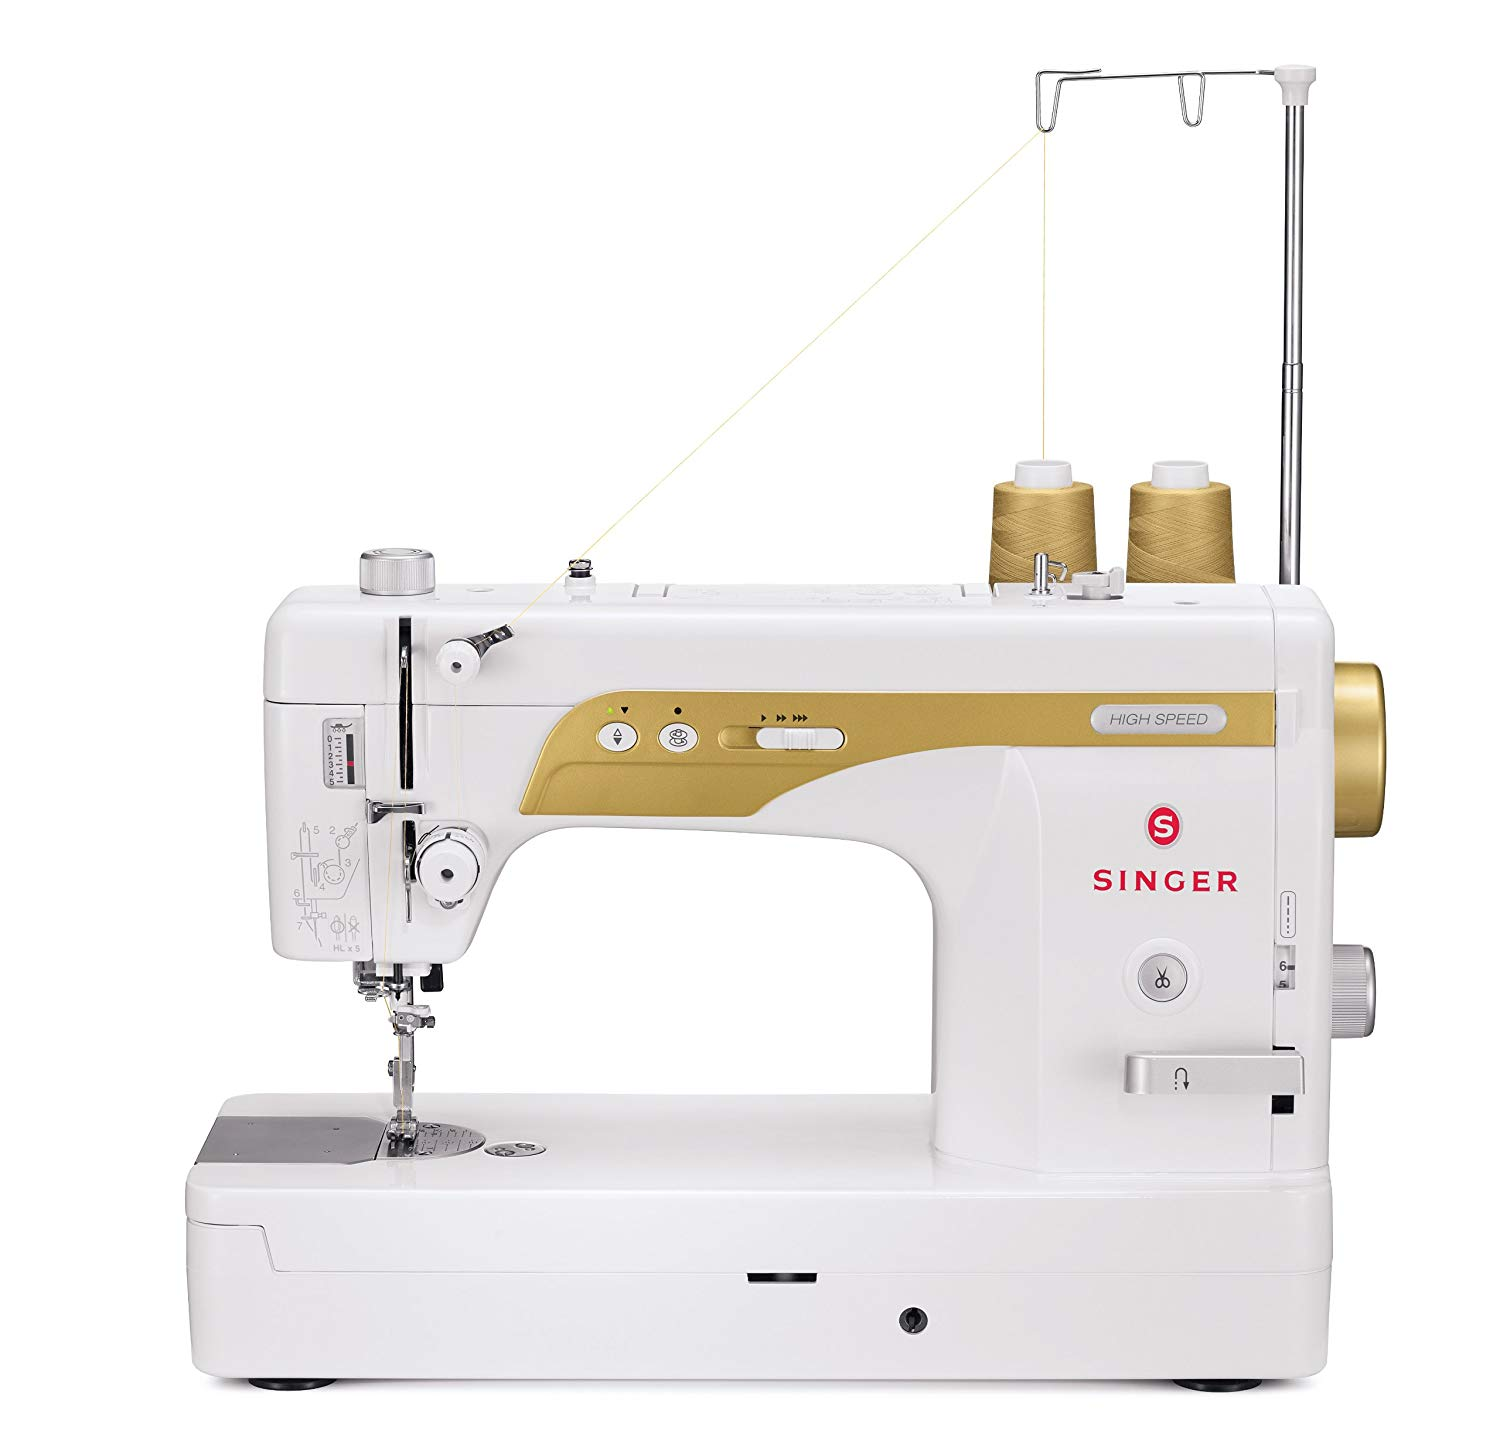 SINGER S16 Studio Sewing and Quilting Machine